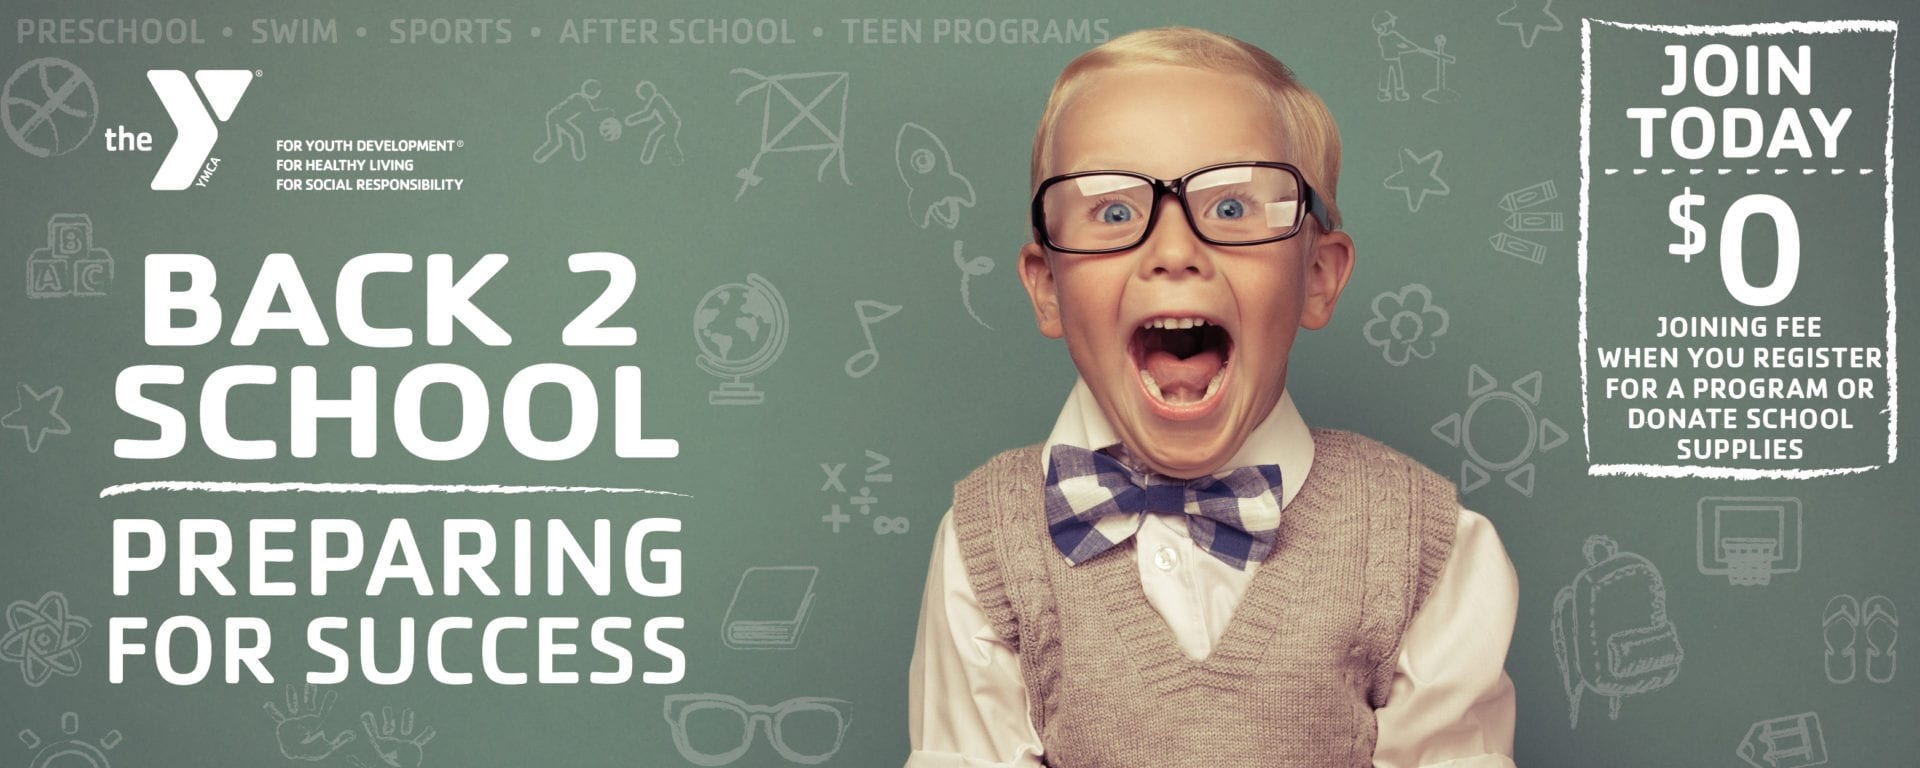 Back To School - Join Today - $0 Joining Fee